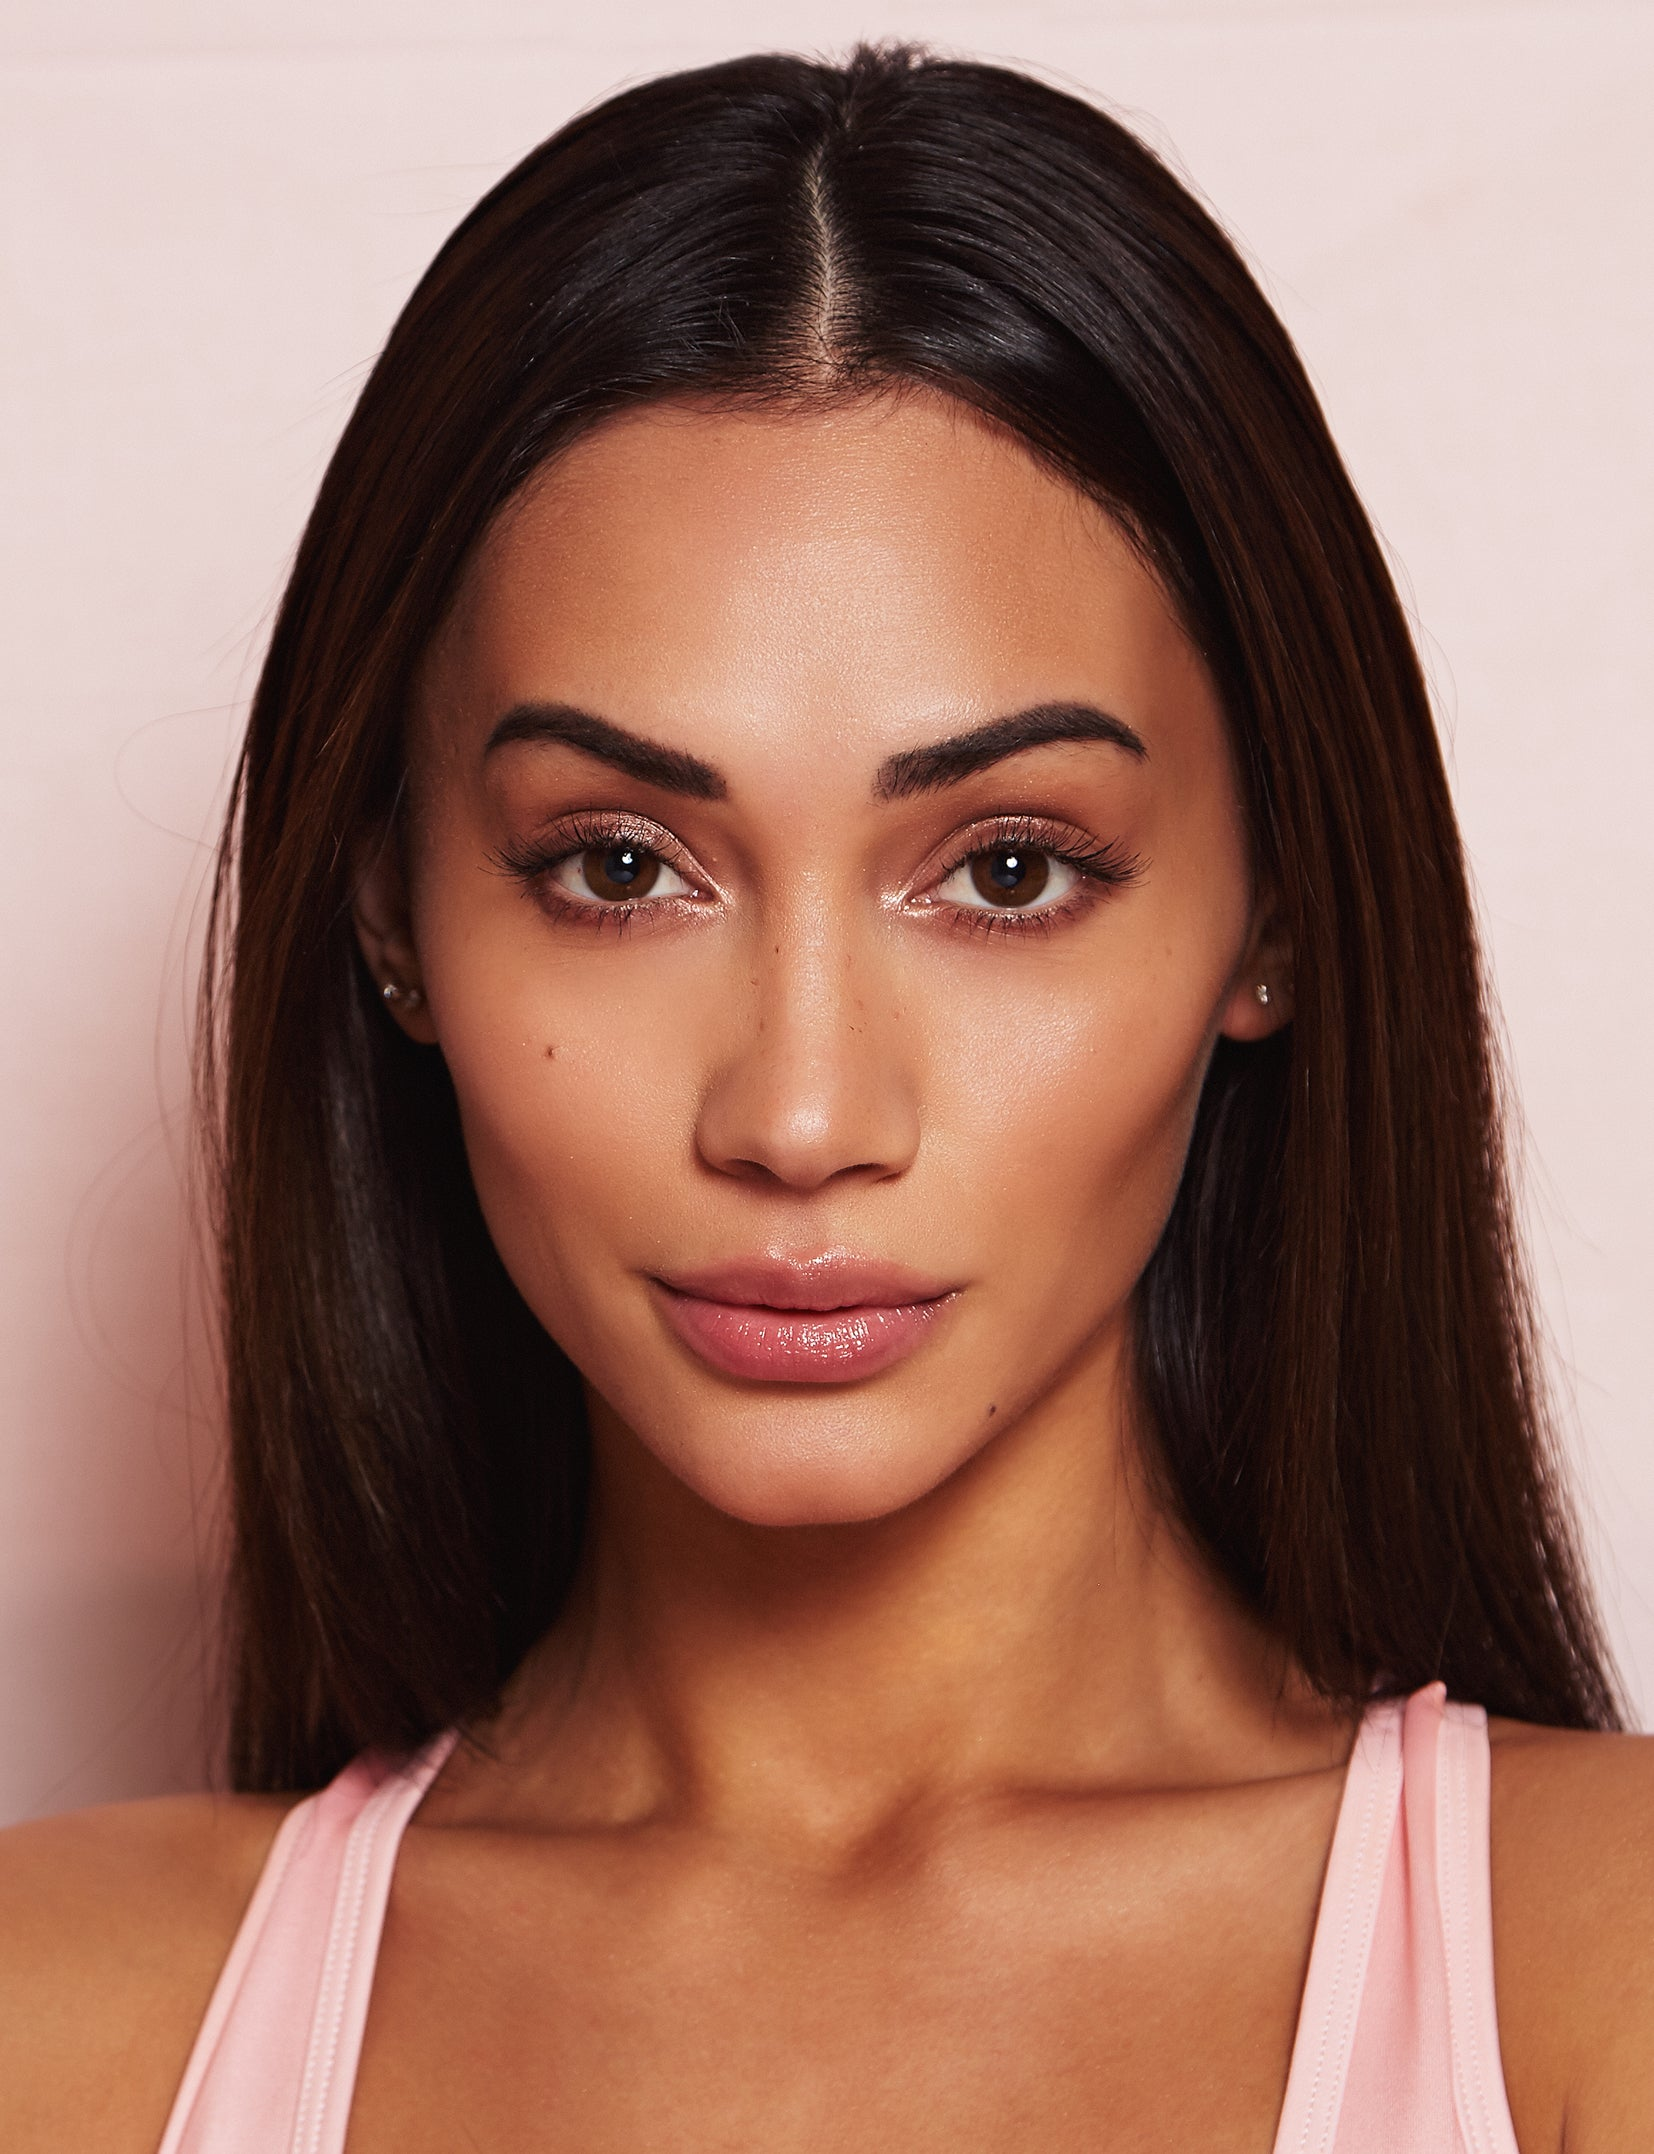 This Lip plumping gloss Nubyen Nude, its our best selling vegan and cruelty free gloss for fuller lips instantly, has natural ingredients such as collagen & hyaluronic acid